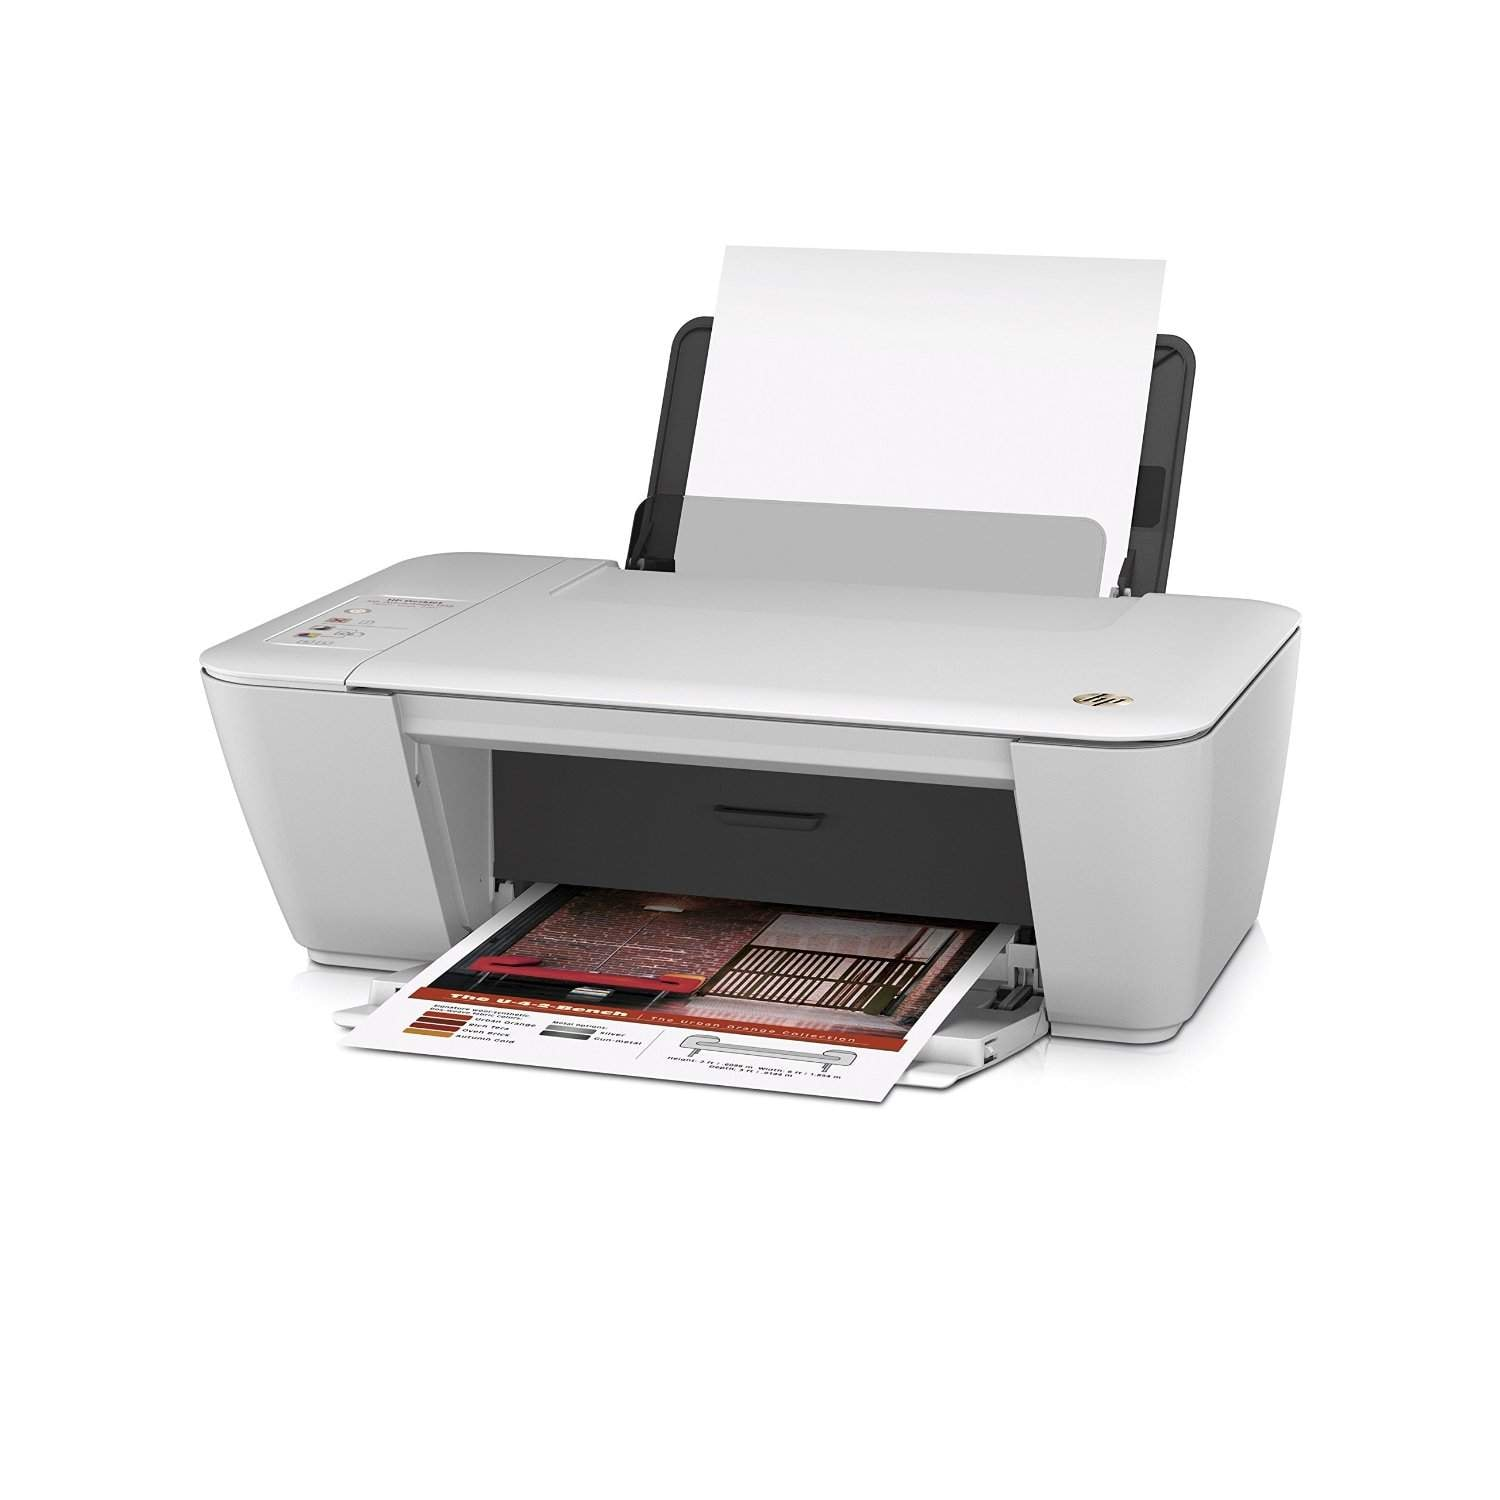 HP Deskjet Ink Advantage 1515 Multi-Function Color All In One Printer (White)